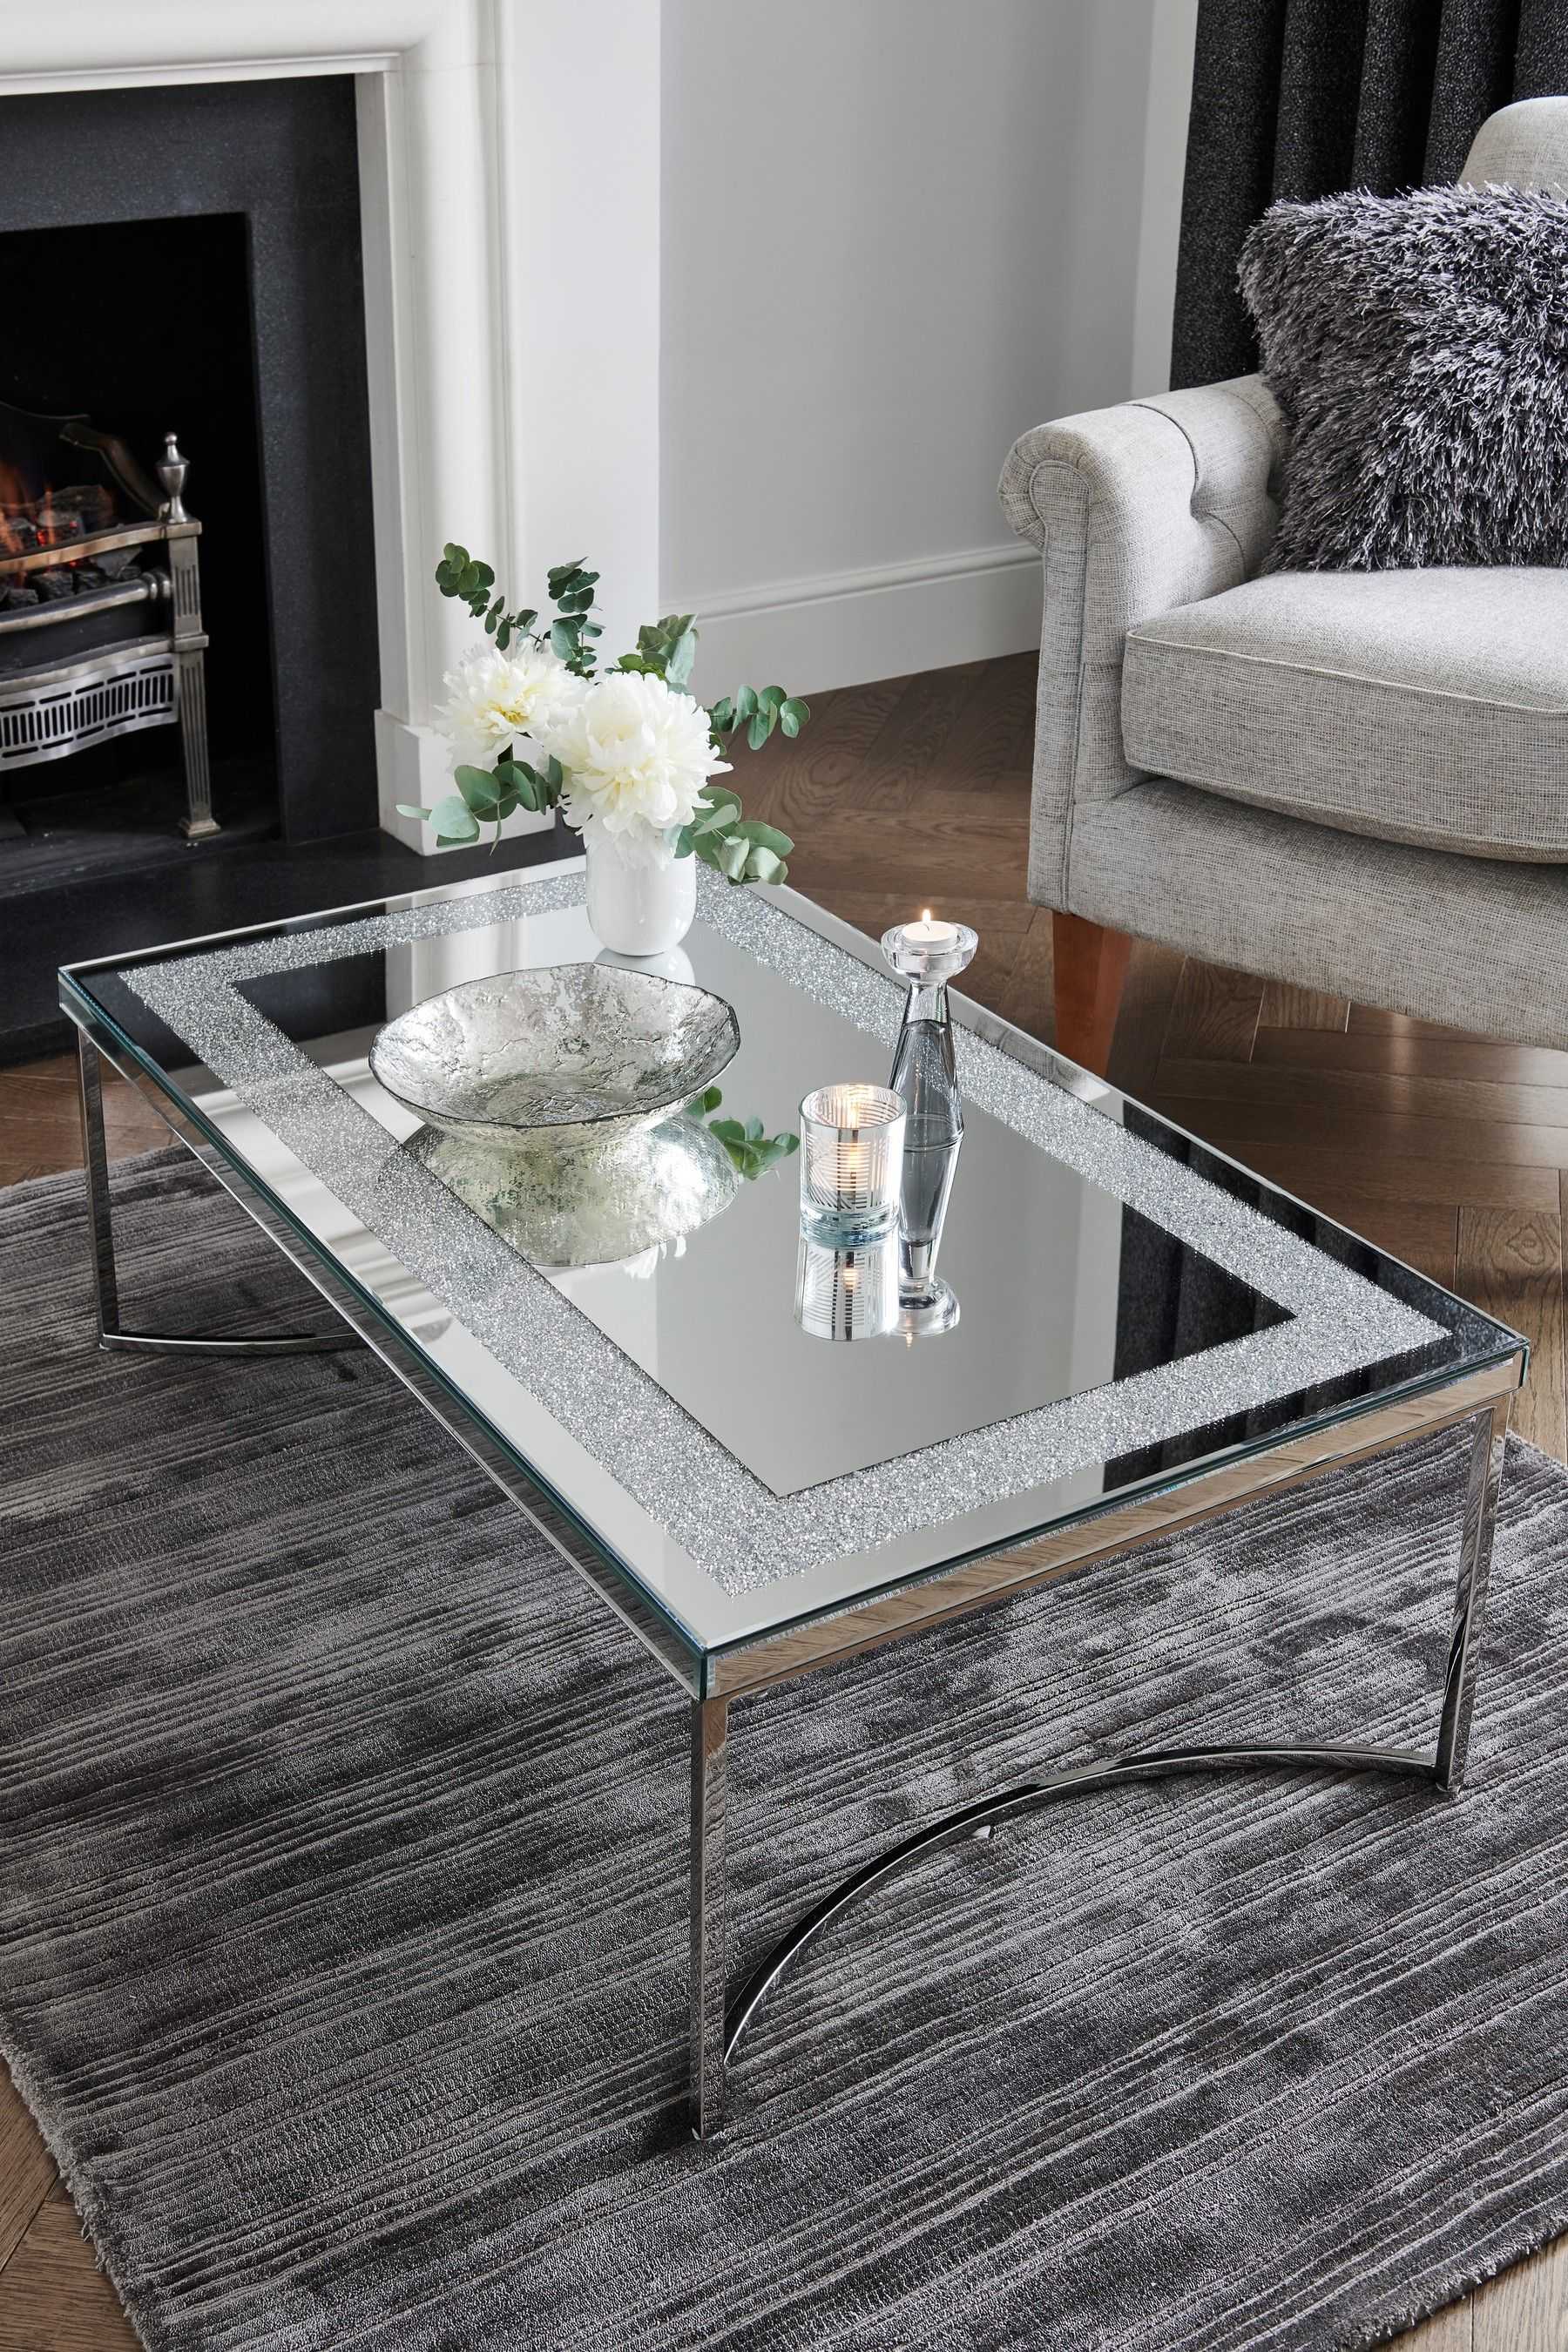 Buy Portia Coffee Table From The Next Uk Online Shop Coffee Table Glass Coffee Table Decor Glass Table Living Room [ 2700 x 1800 Pixel ]